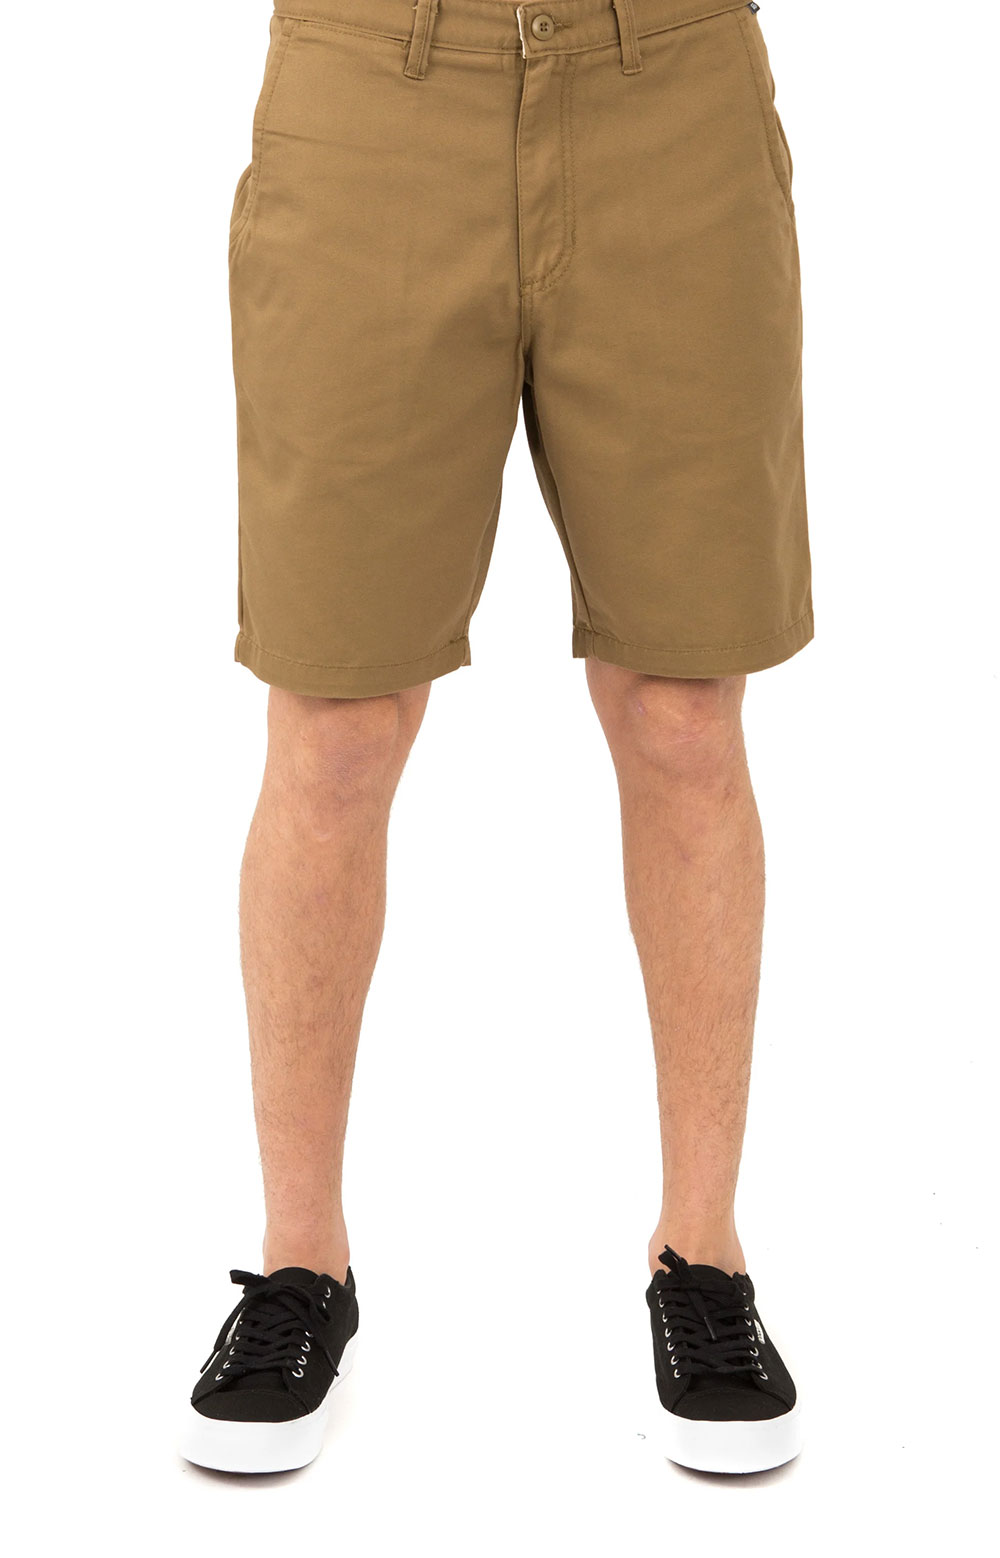 Authentic Stretch Shorts - Dirt